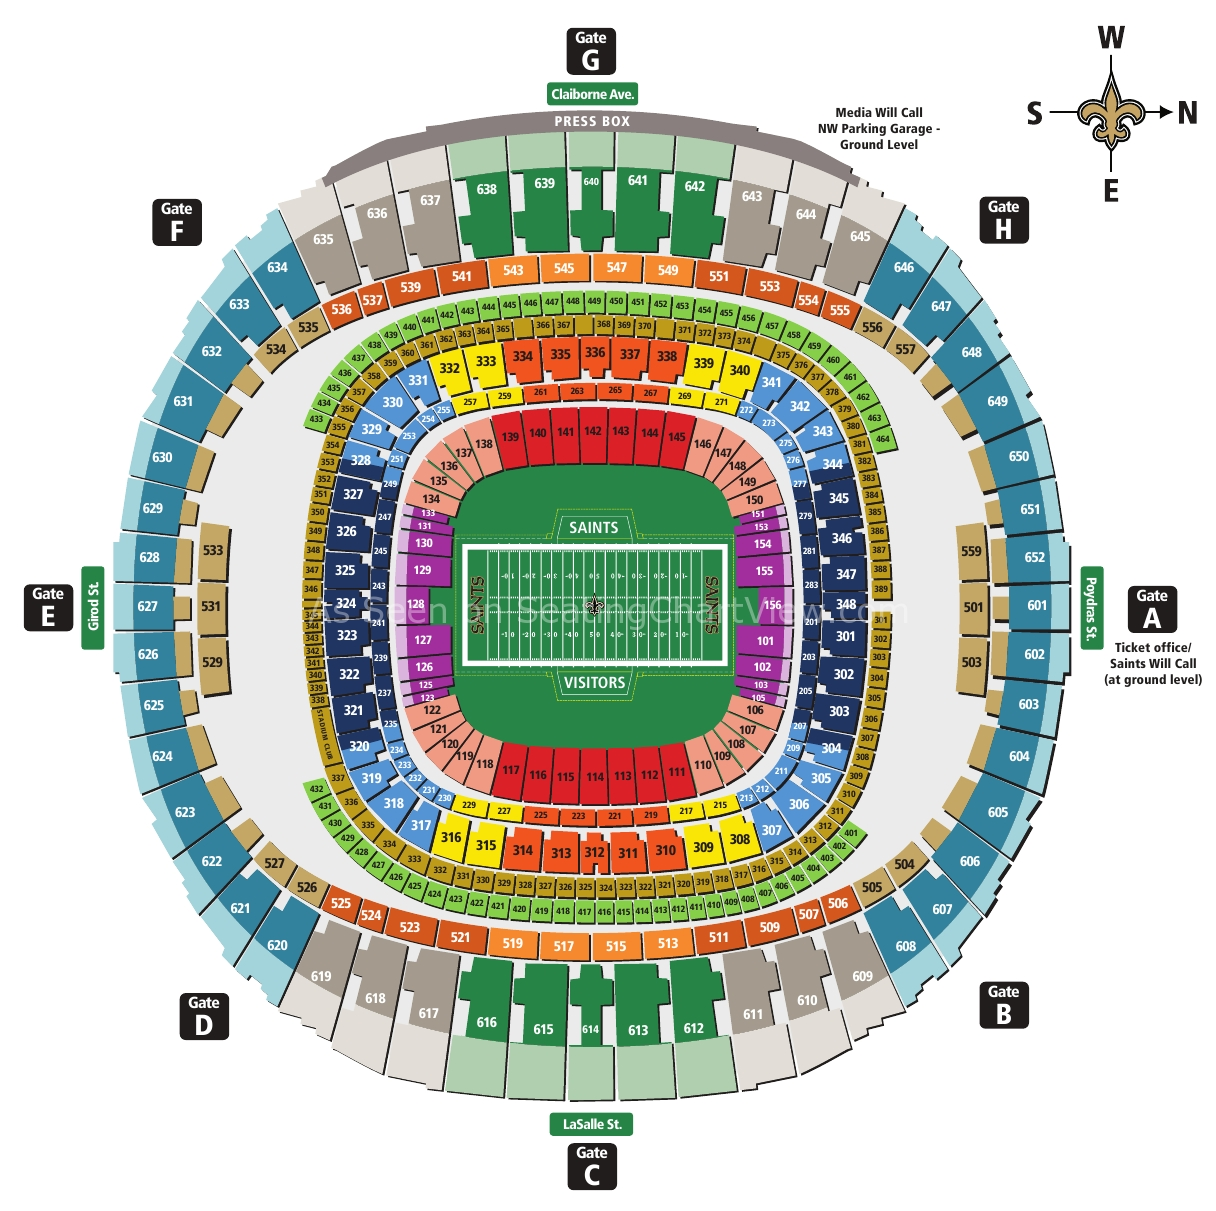 Mercedes-Benz Superdome, New Orleans La   Seating Chart View intended for New Orleans Super Bowl Seating Chart